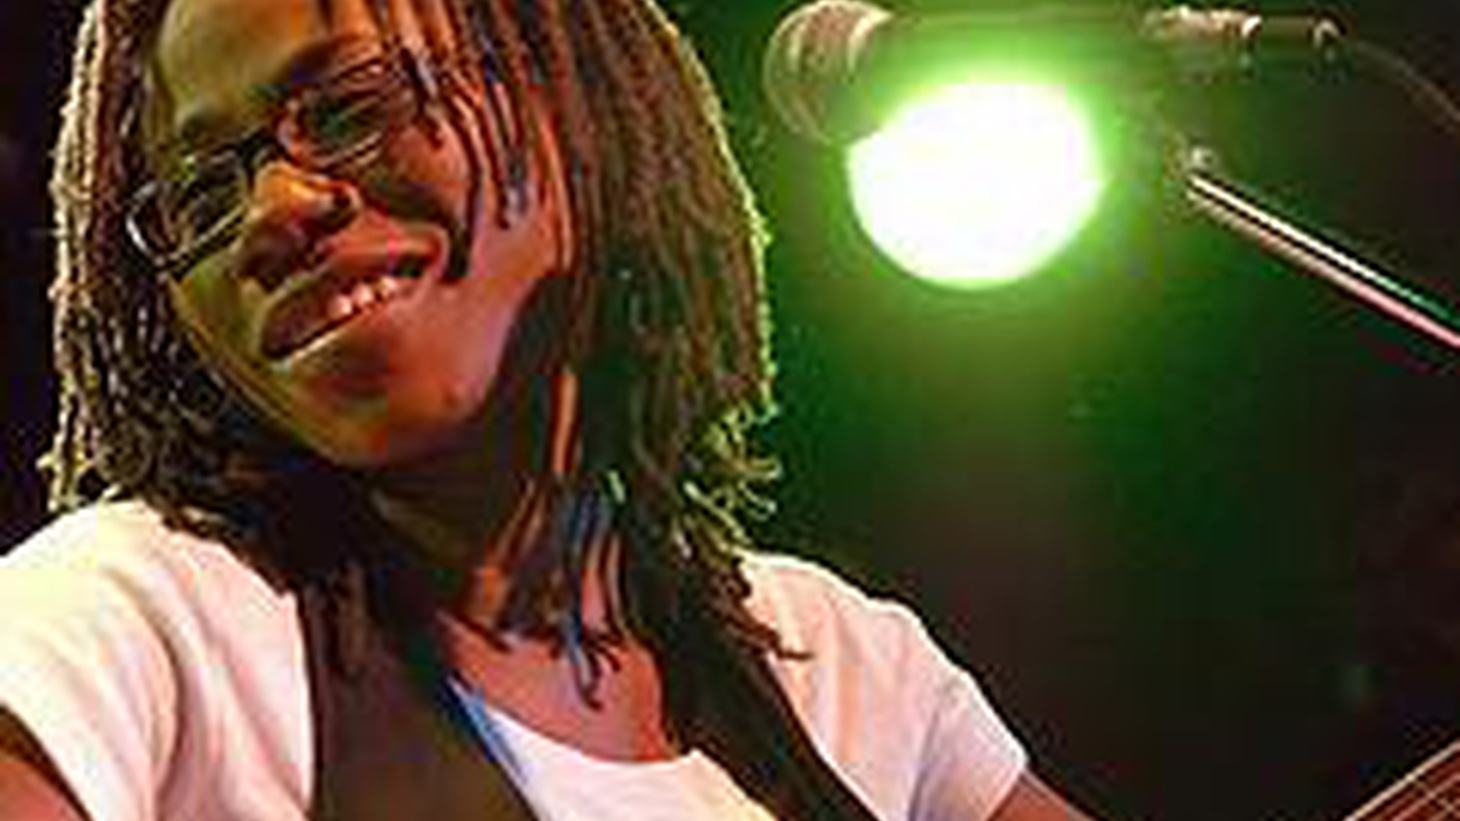 ...from her self-titled CD.   Asa was born in Paris but returned to her family's homeland of Nigeria as a child. Music has always been a refuge for her..